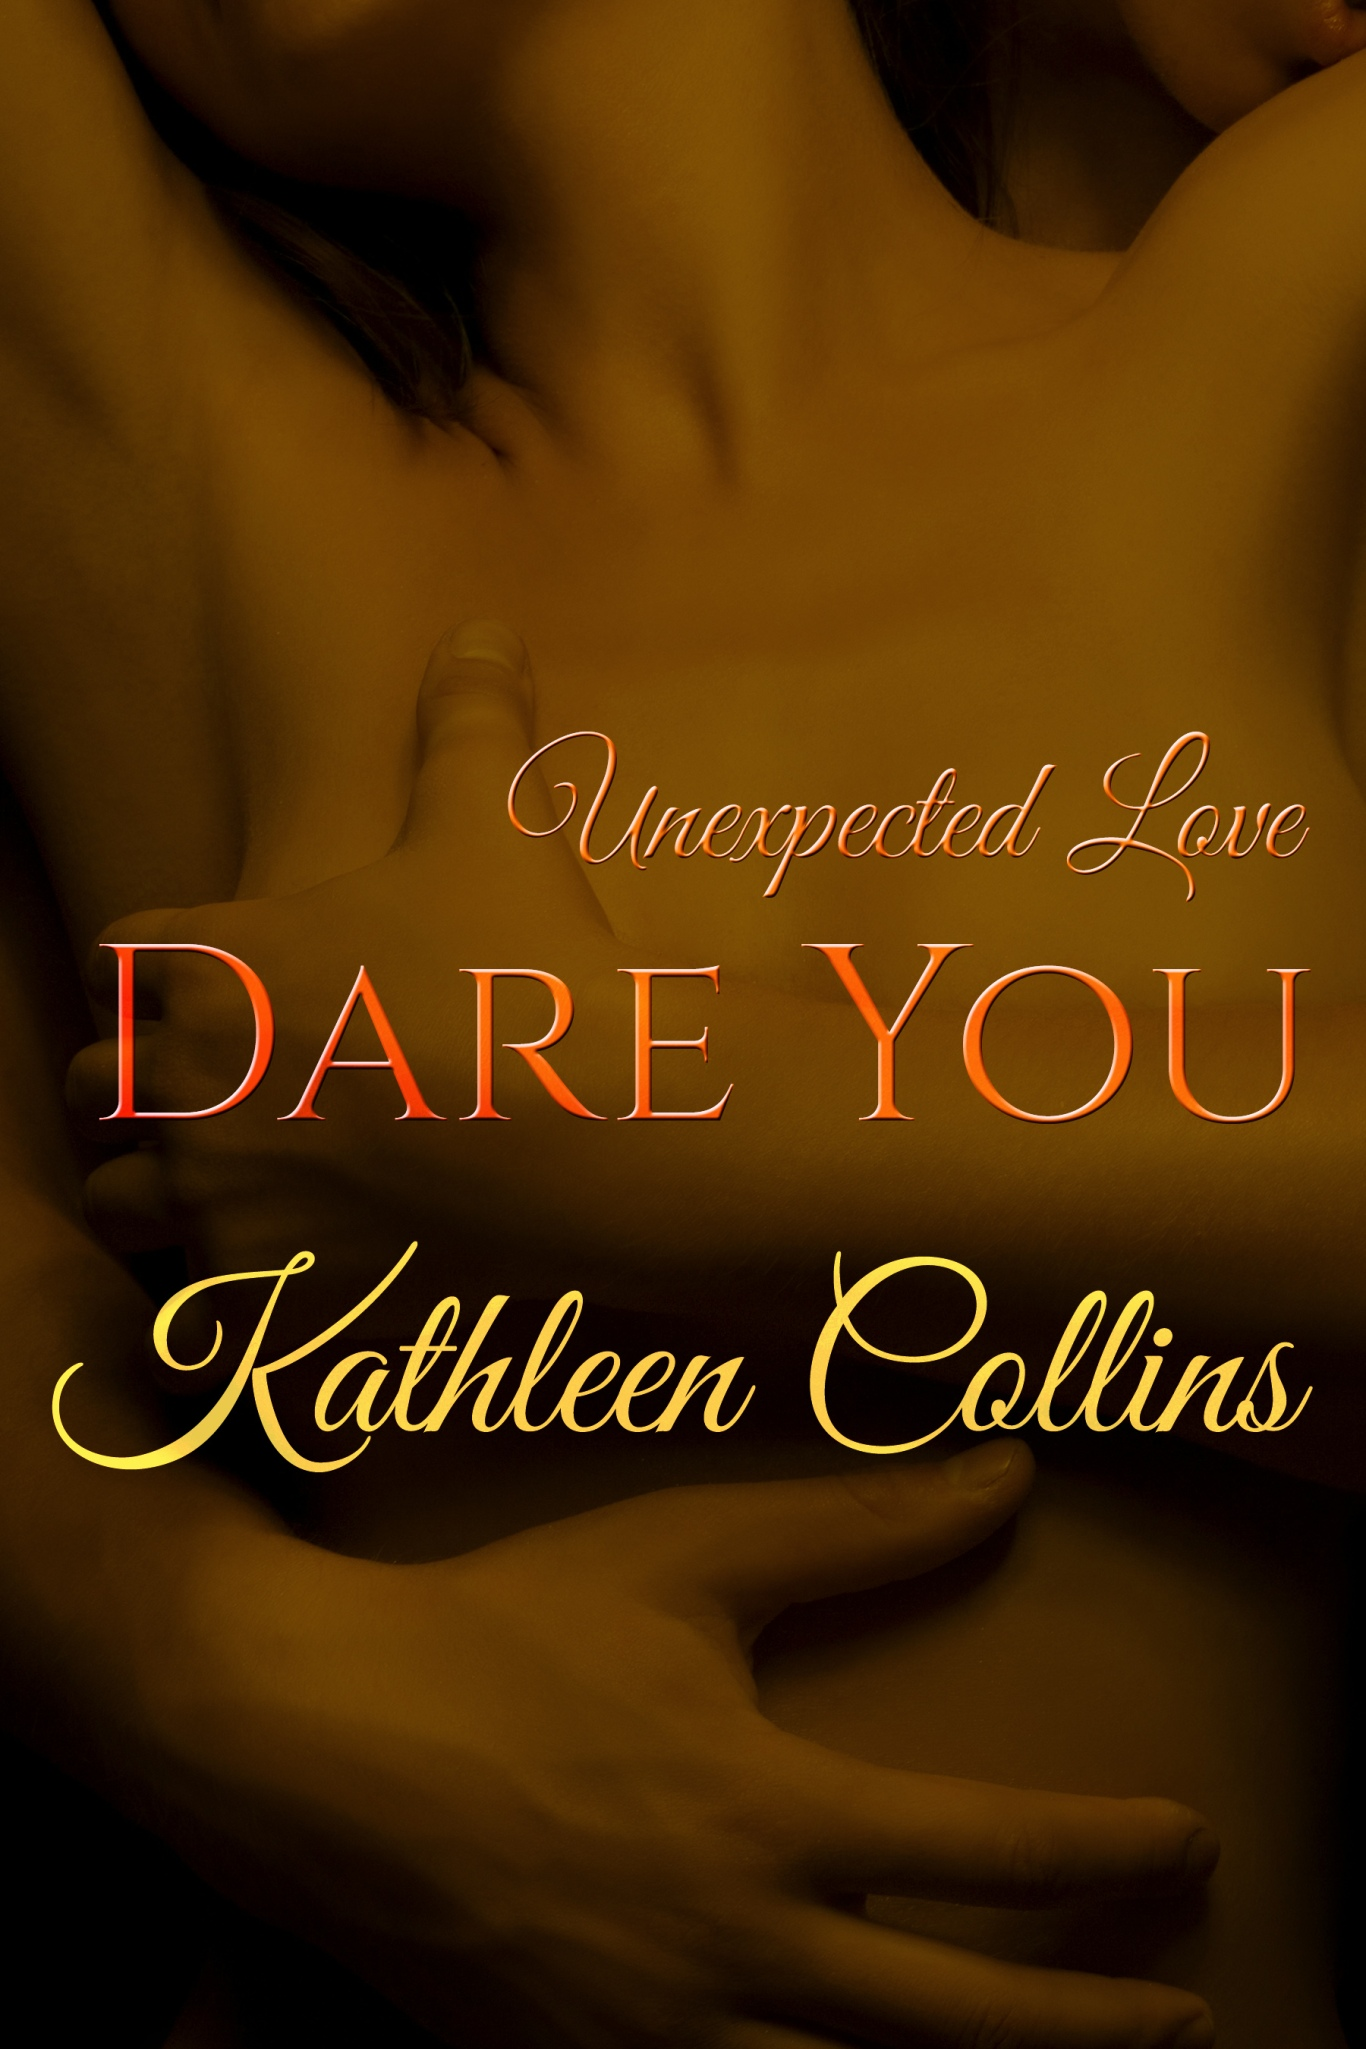 2015-278 Kathleen Collins Dare You